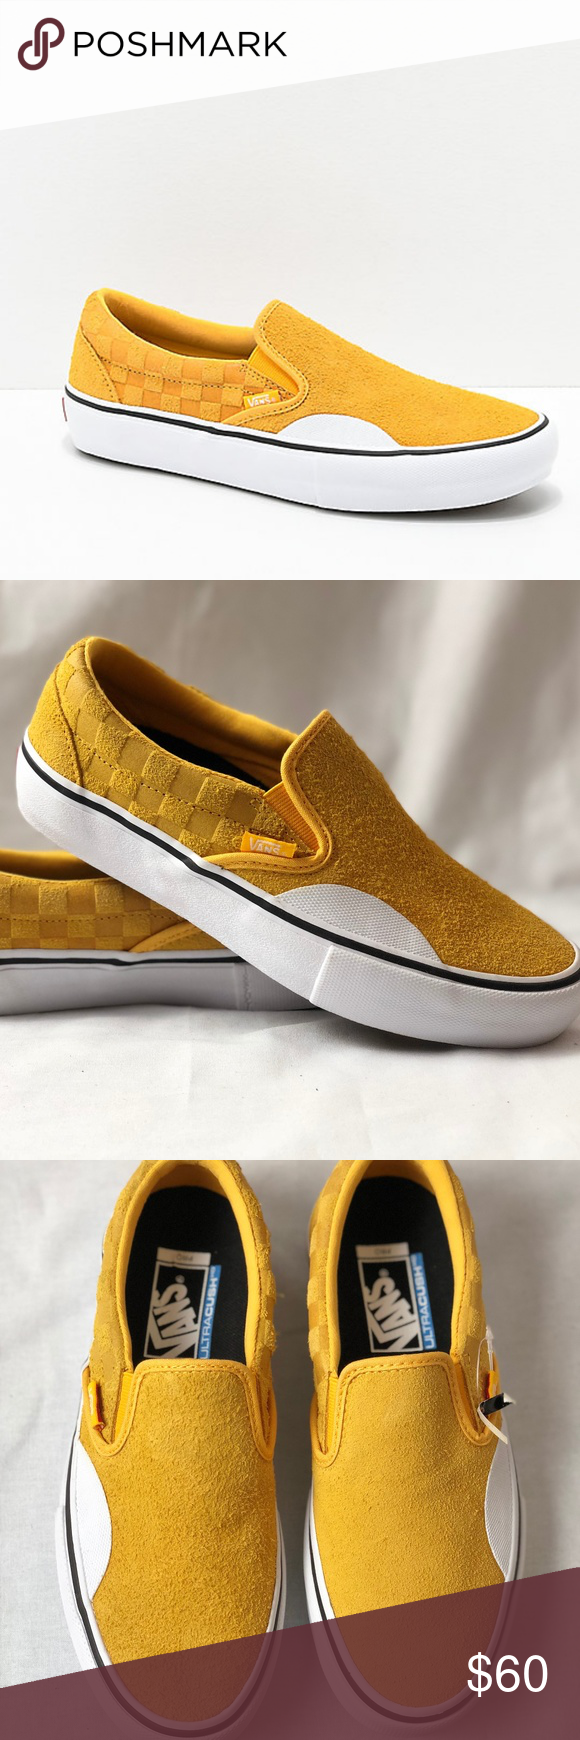 Vans Slip-On Pro Hairy Banana Yellow Checkerboard. Vans Slip-On Pro ...